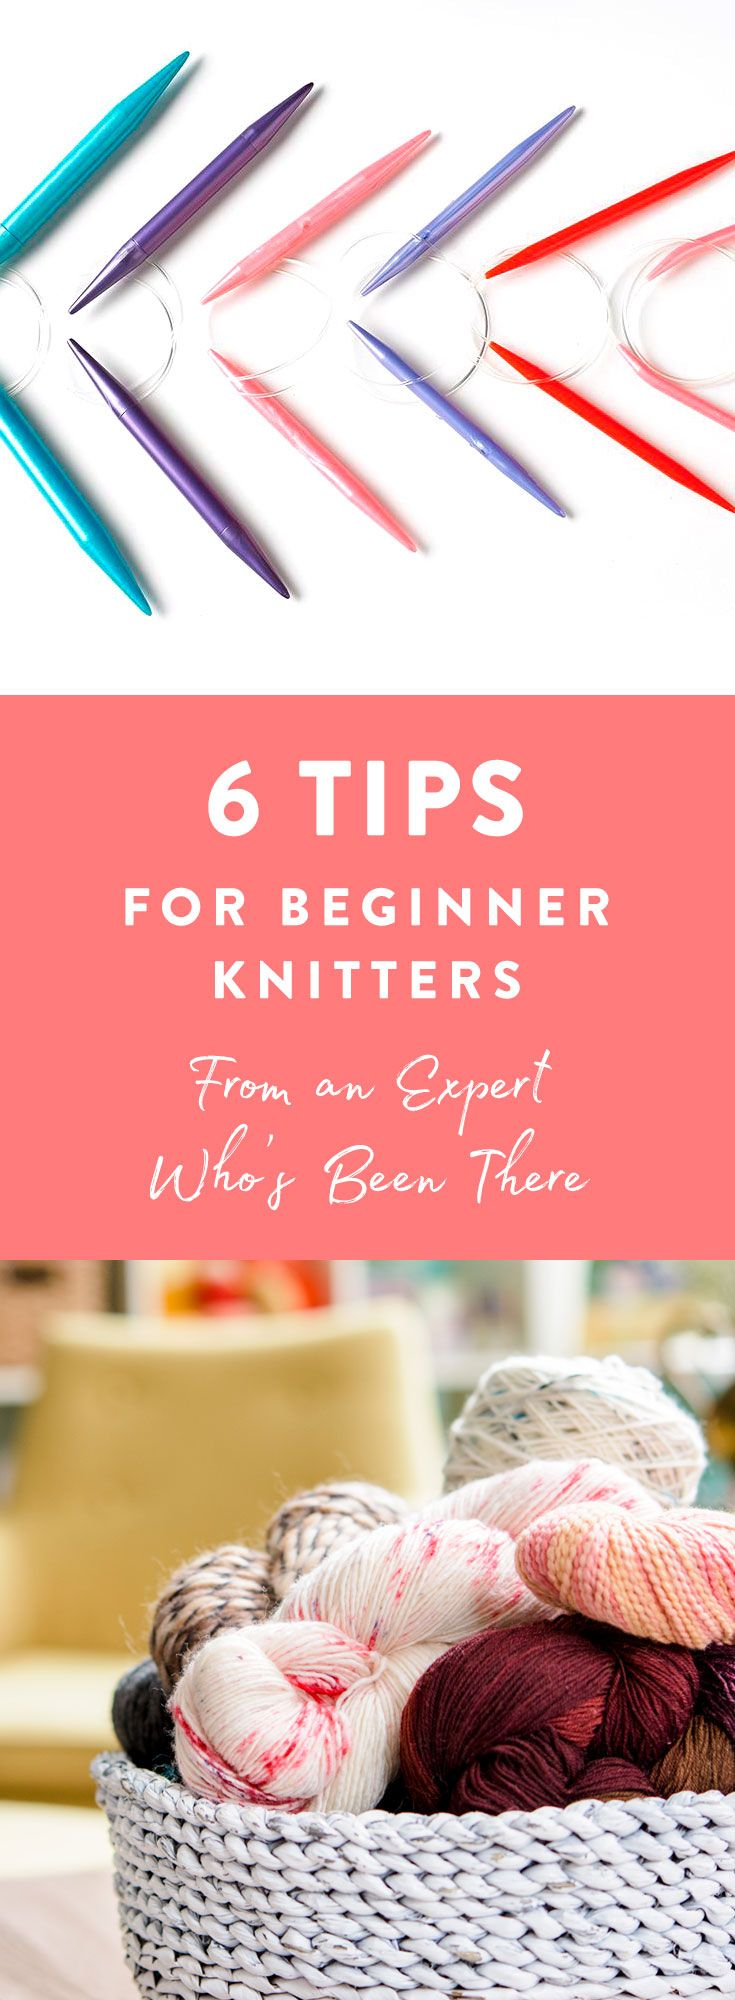 Knitting Tips And Tricks For Beginners : Best knitting patterns images on pinterest